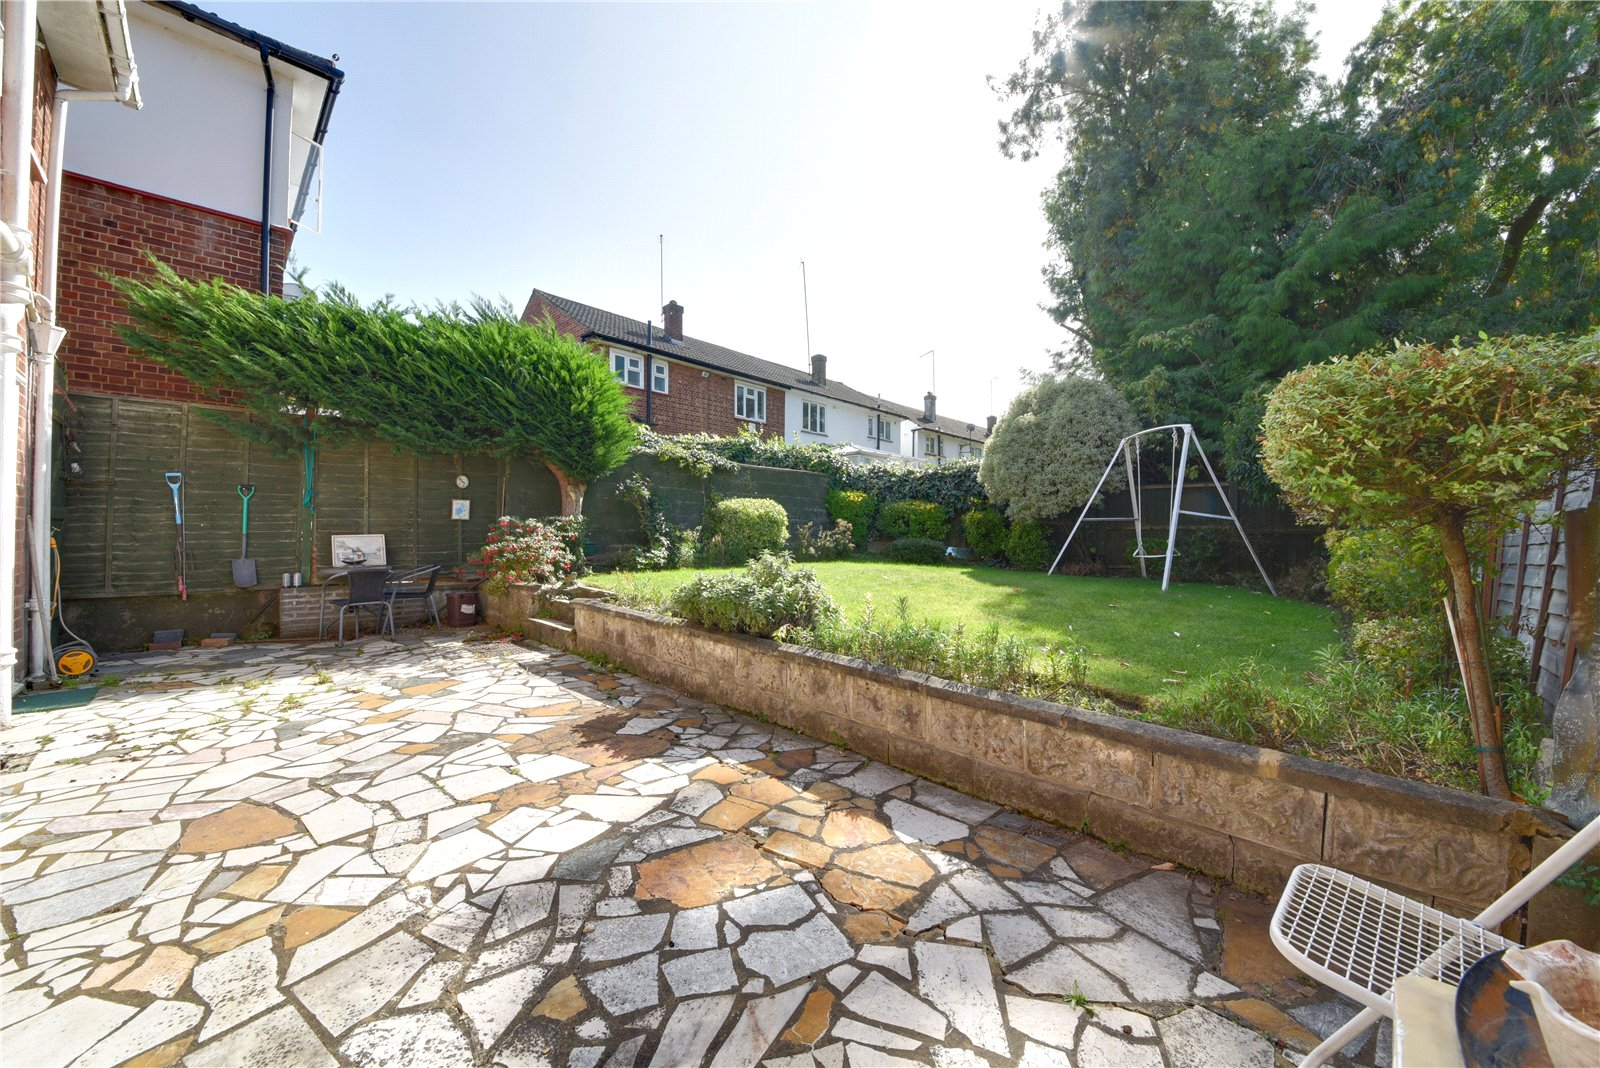 3 bed house for sale in West Finchley, N3 1PB 2